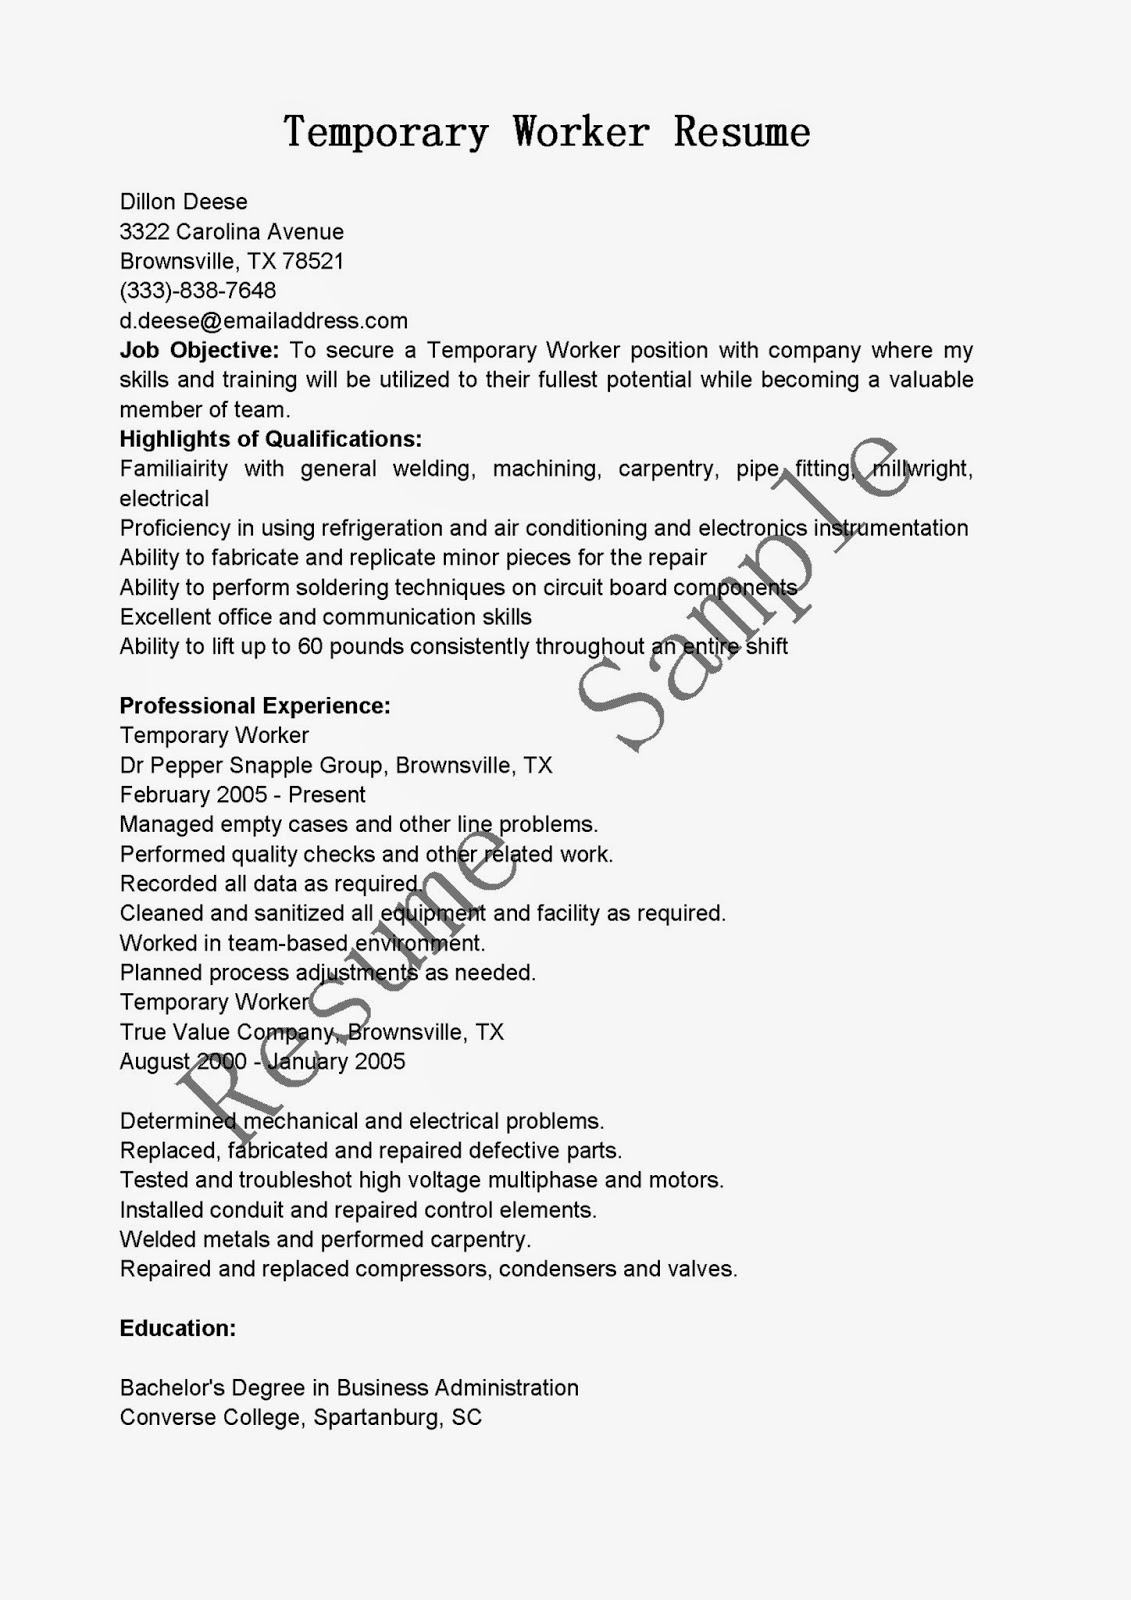 Resume Samples Temporary Worker Resume Sample